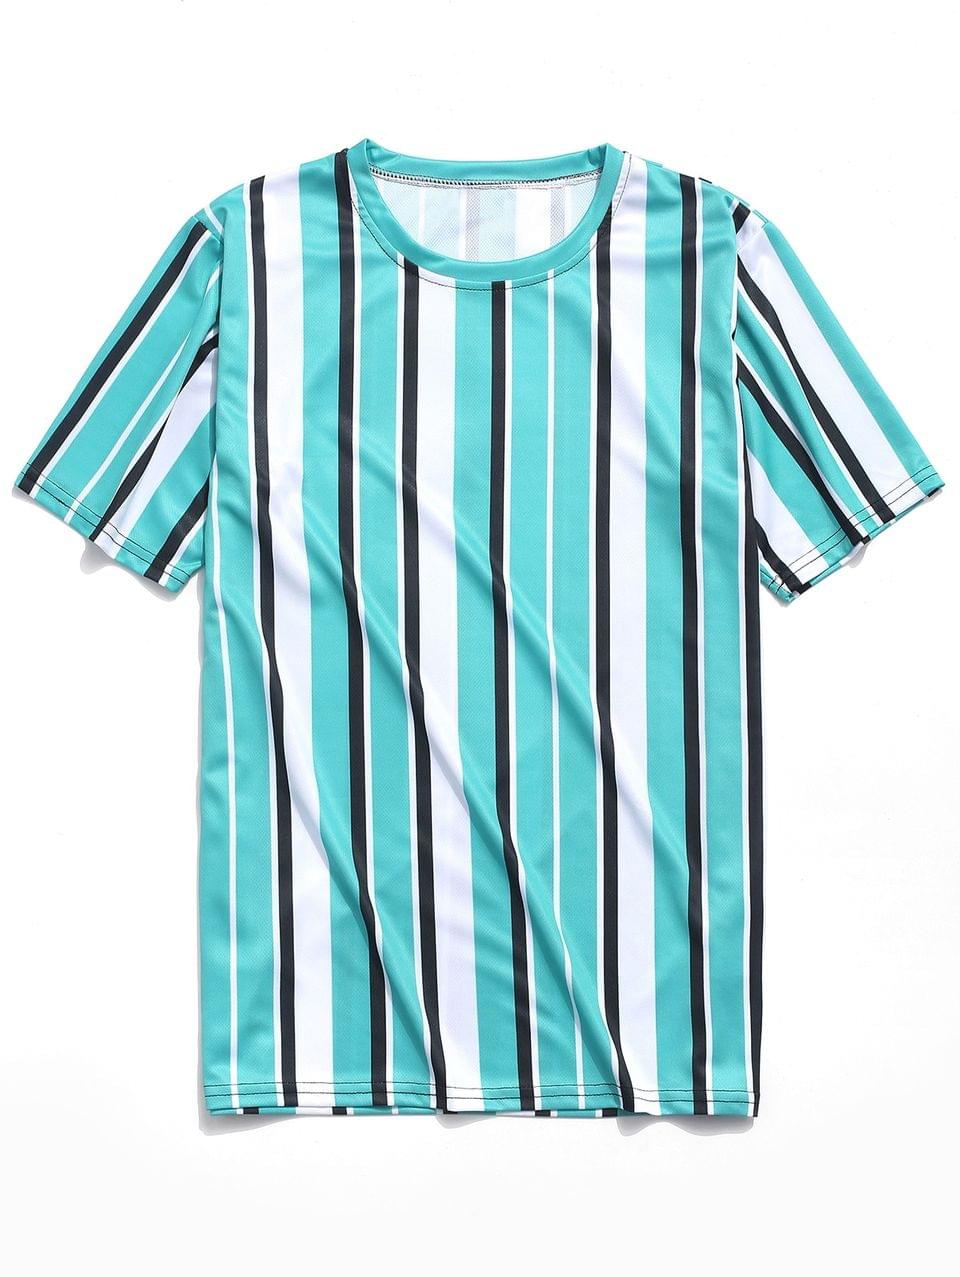 Men's Short Sleeves Vertical Stripes Print Casual T-shirt - Macaw Blue Green M